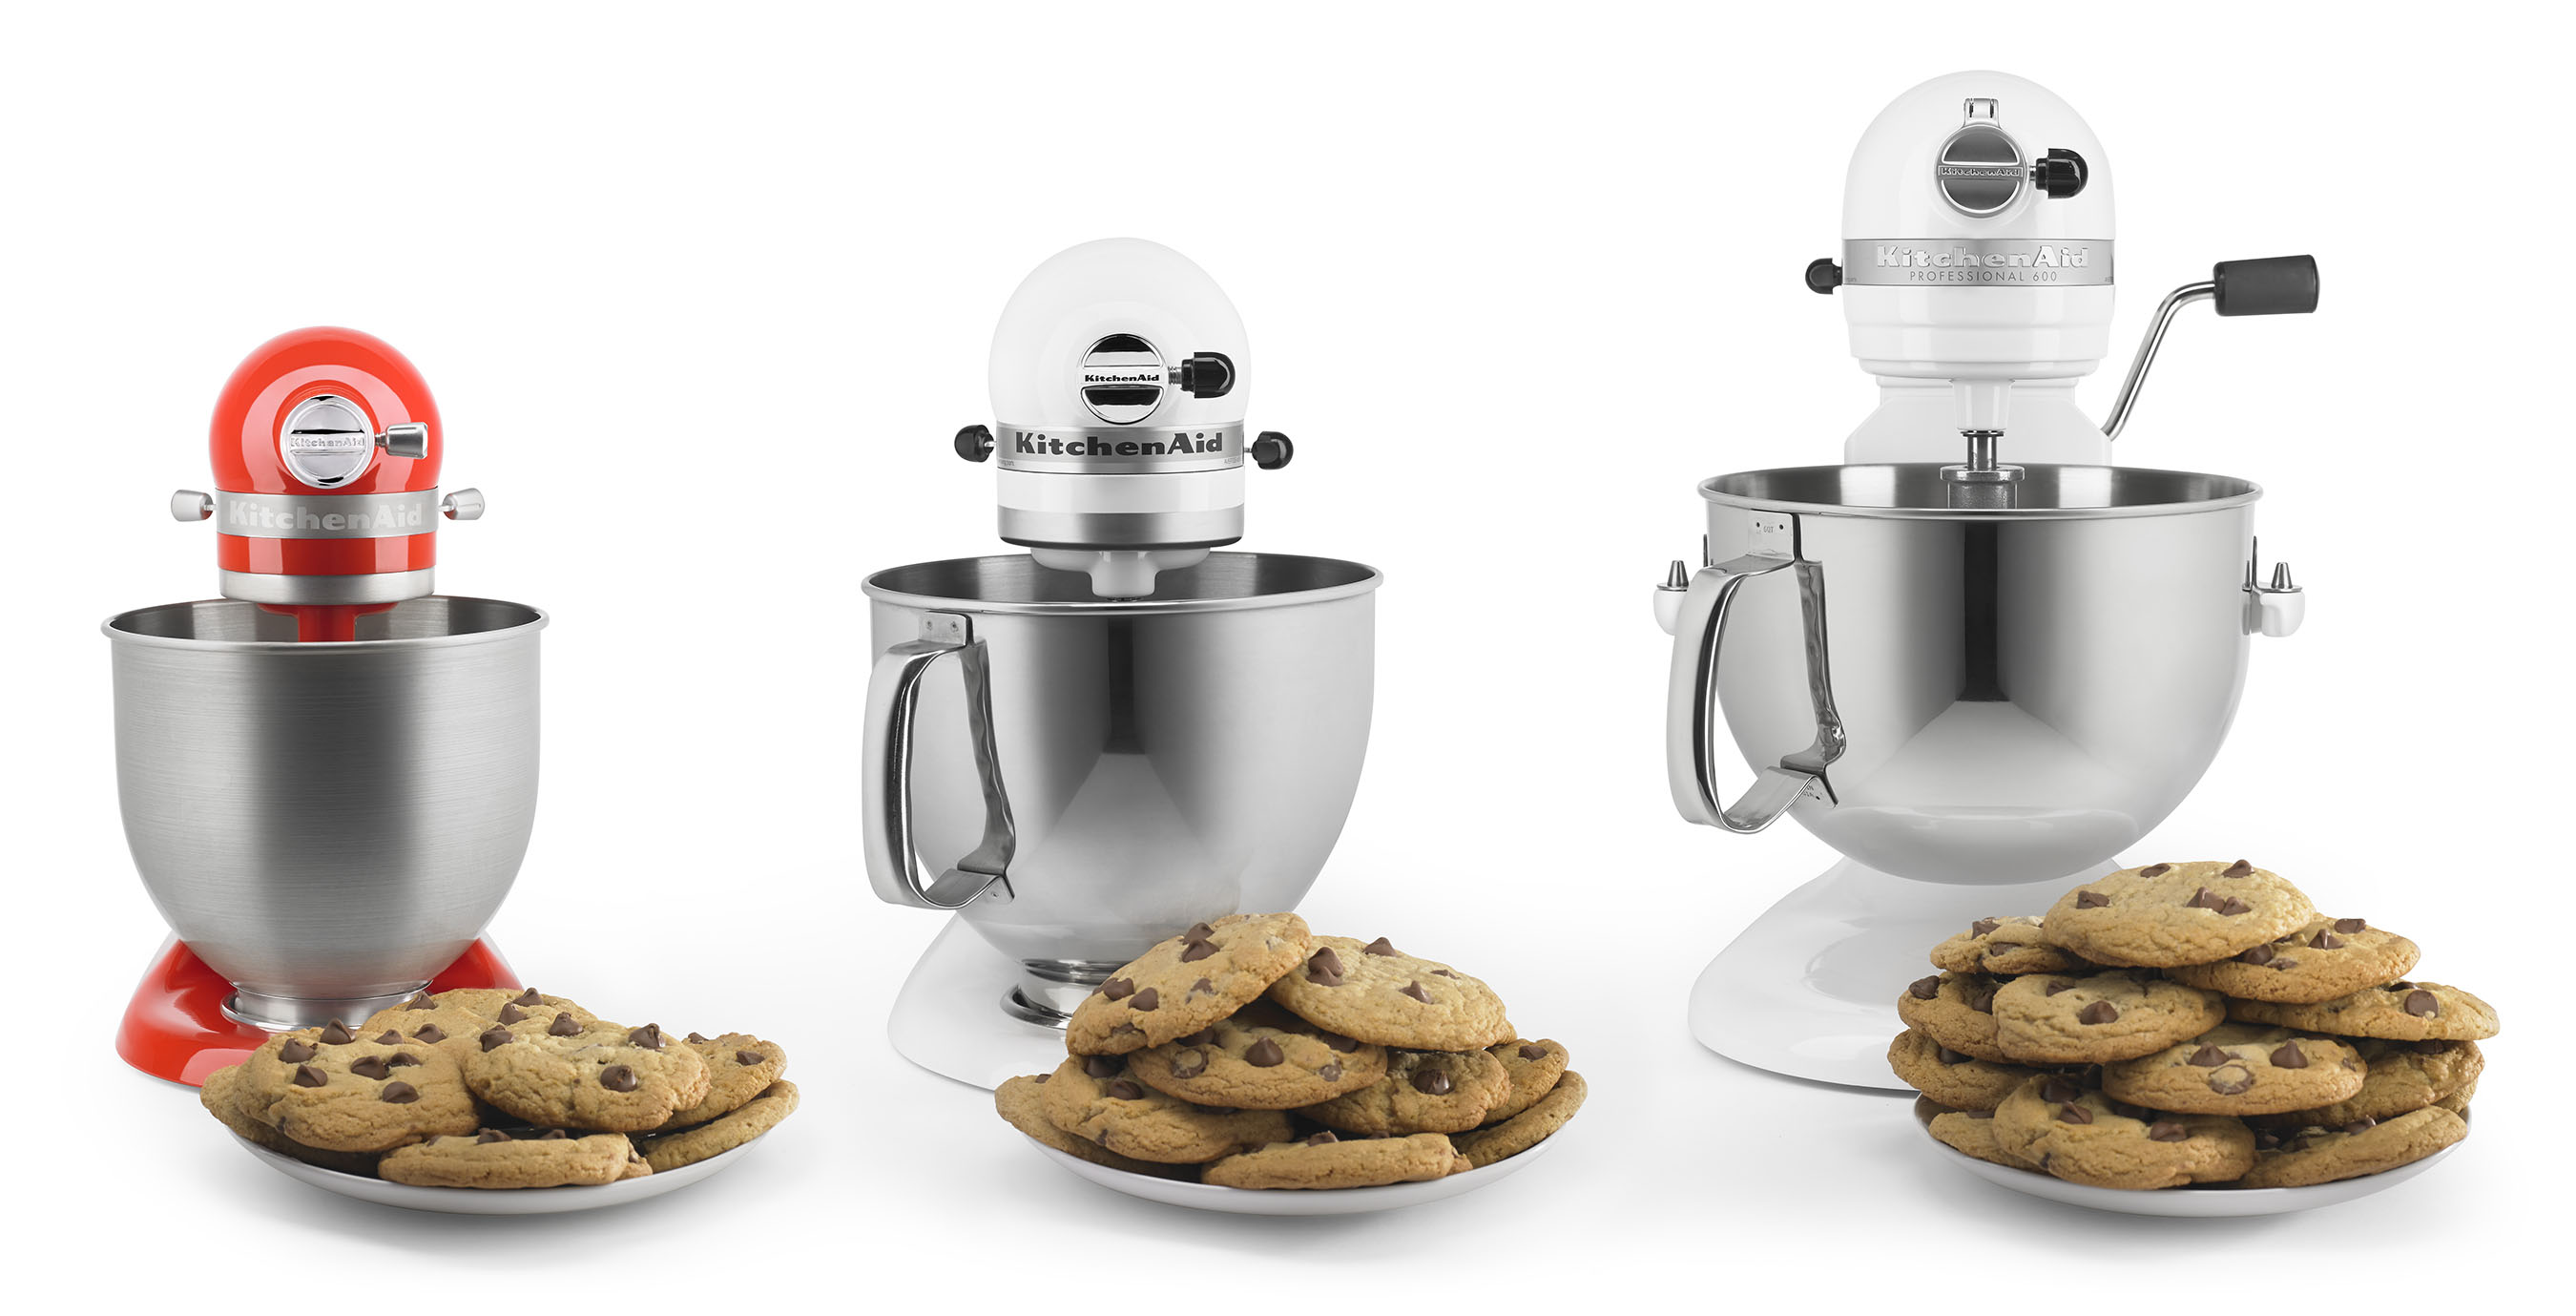 NEW KITCHENAID STAND MIXER SMALL YET MIGHTY